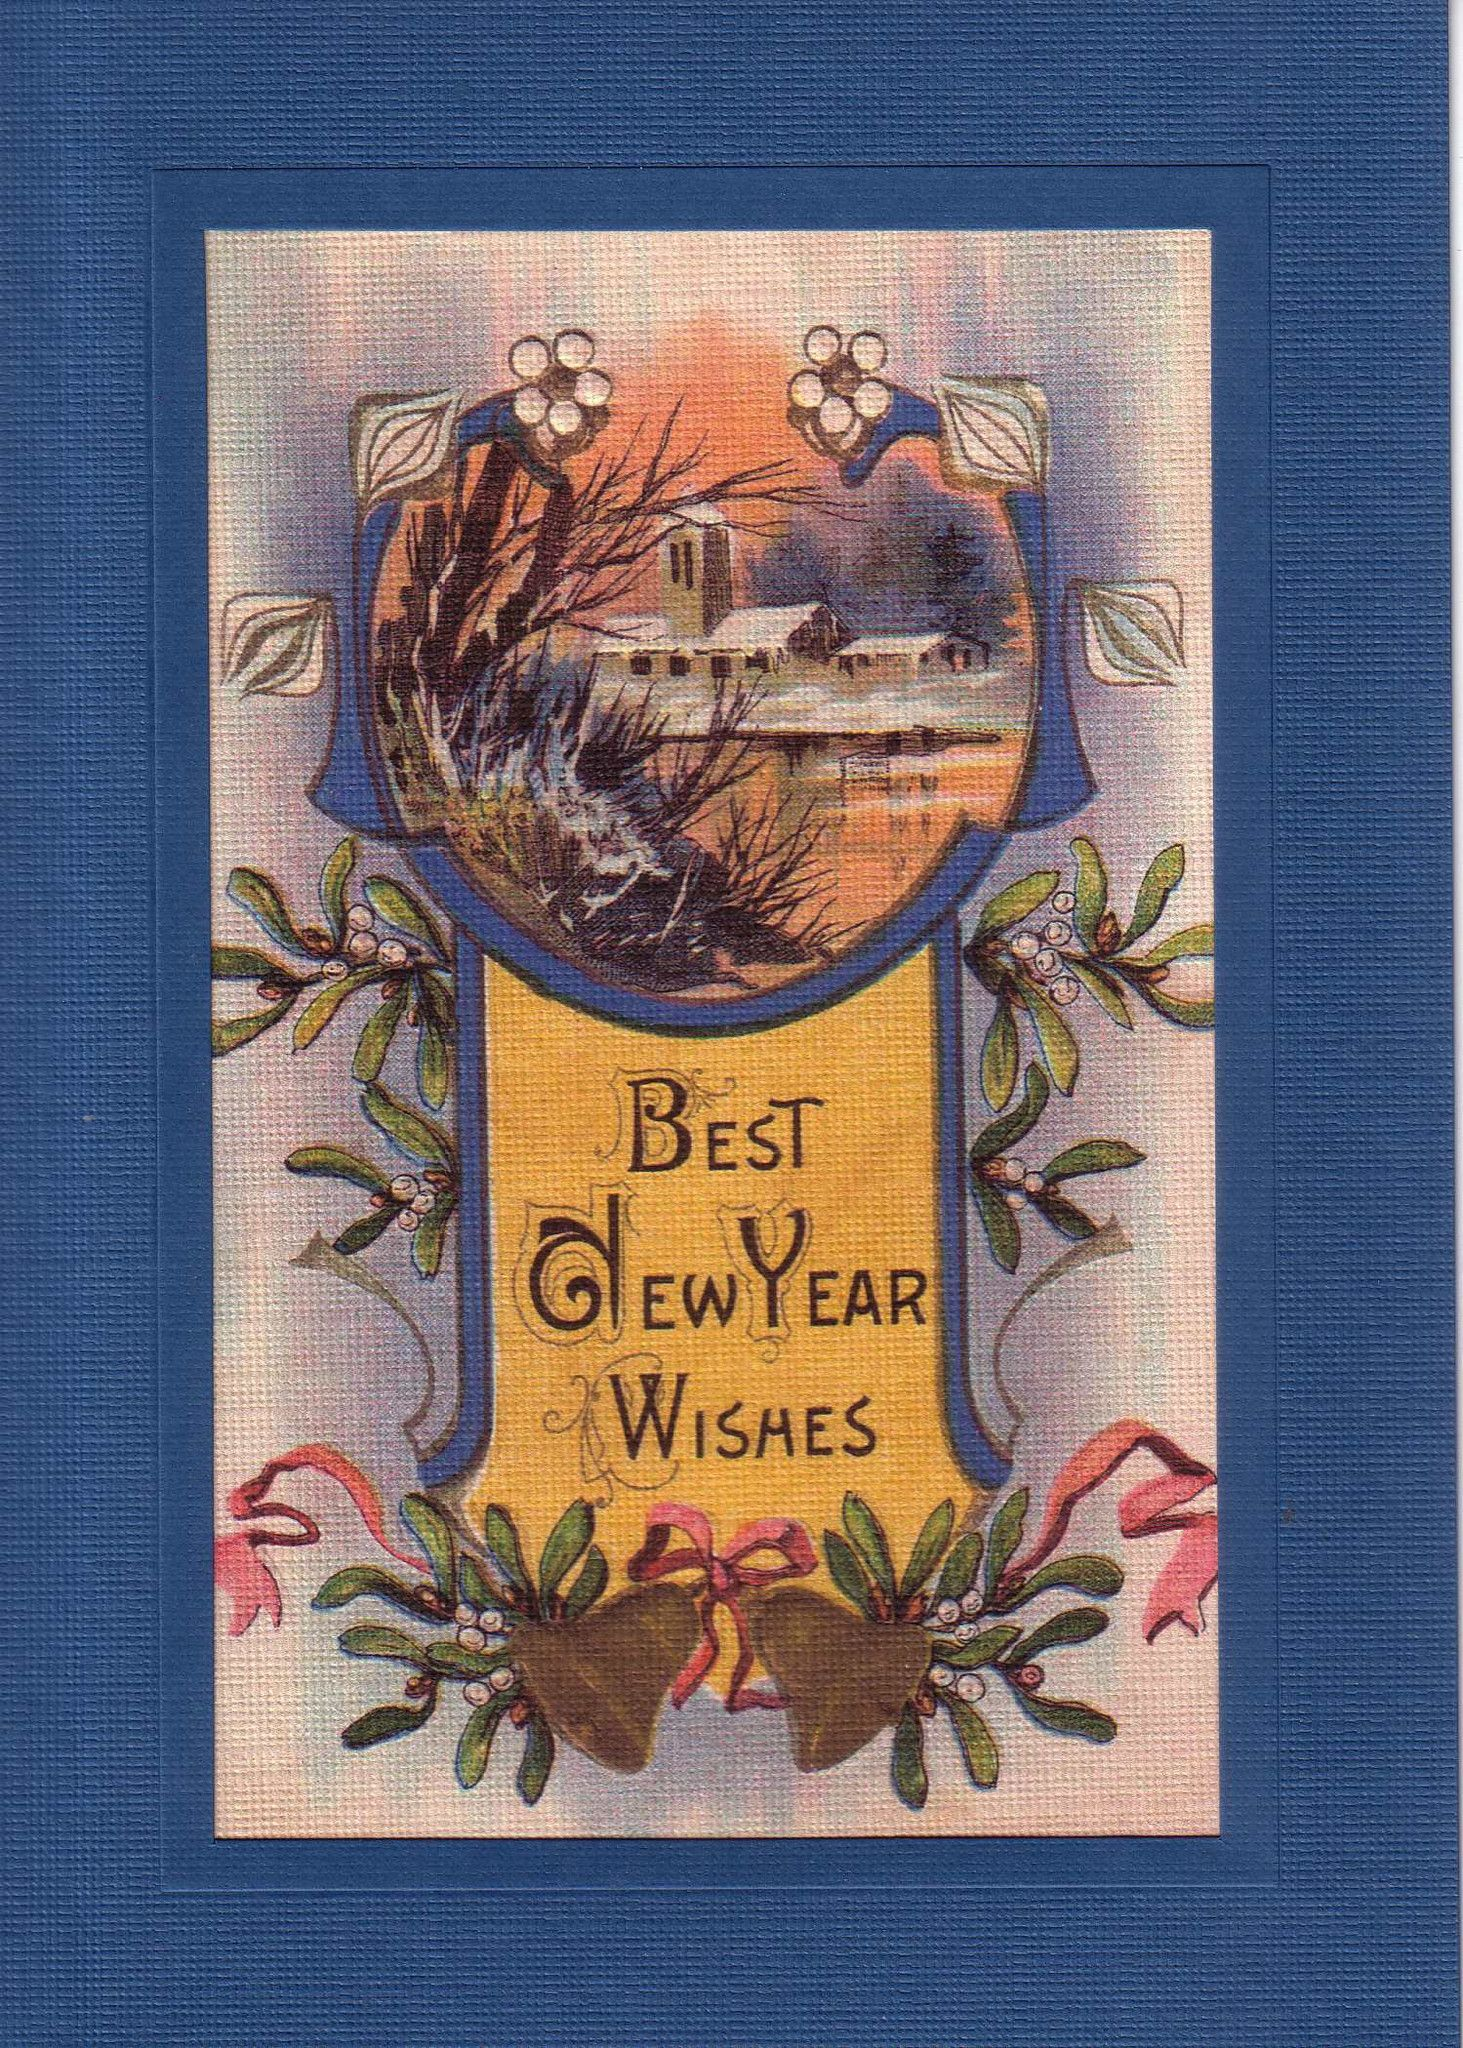 Best New Year Wishes Vintage happy new year, Happy new